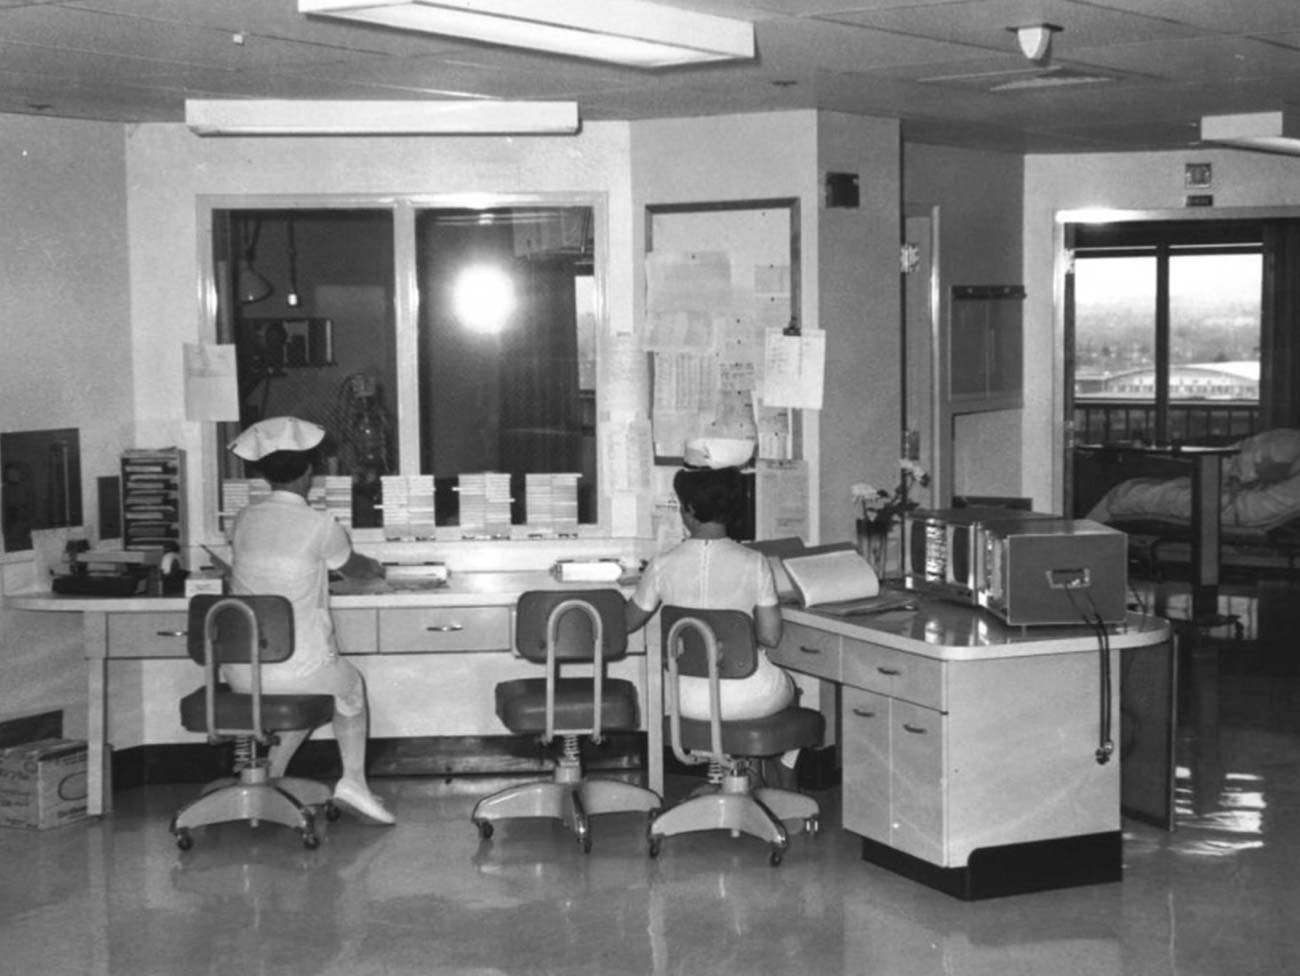 Another view of the nurses' station in the Santa Clara Medical Center, 1964.